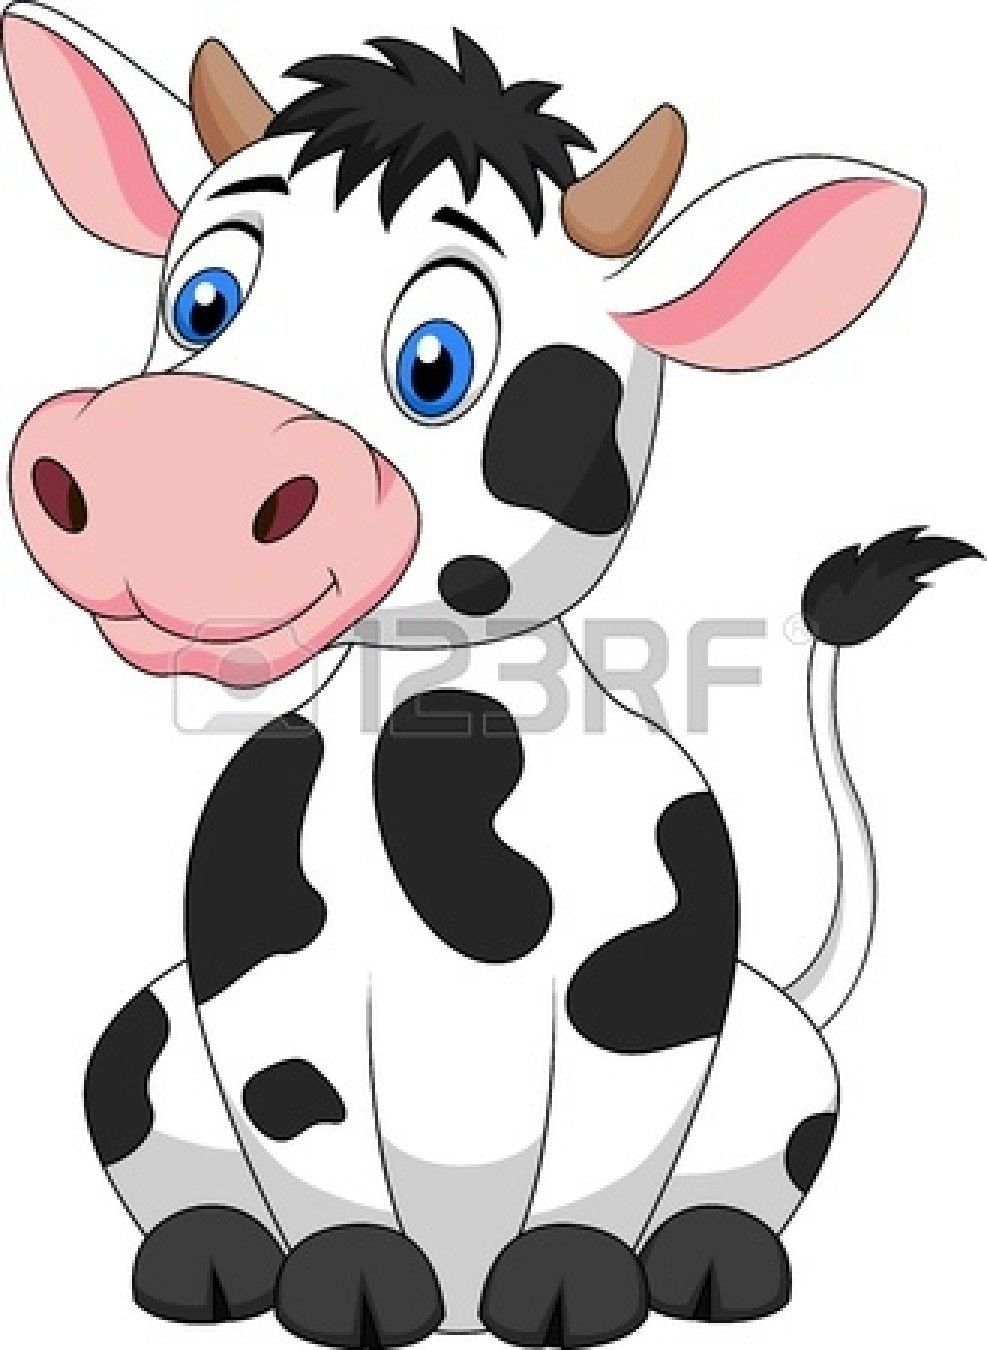 101 dalmatian cows clipart jpg royalty free stock Stock Vector | Fondant Cow & Cake Tutorials | Cartoon cow, Cow ... jpg royalty free stock